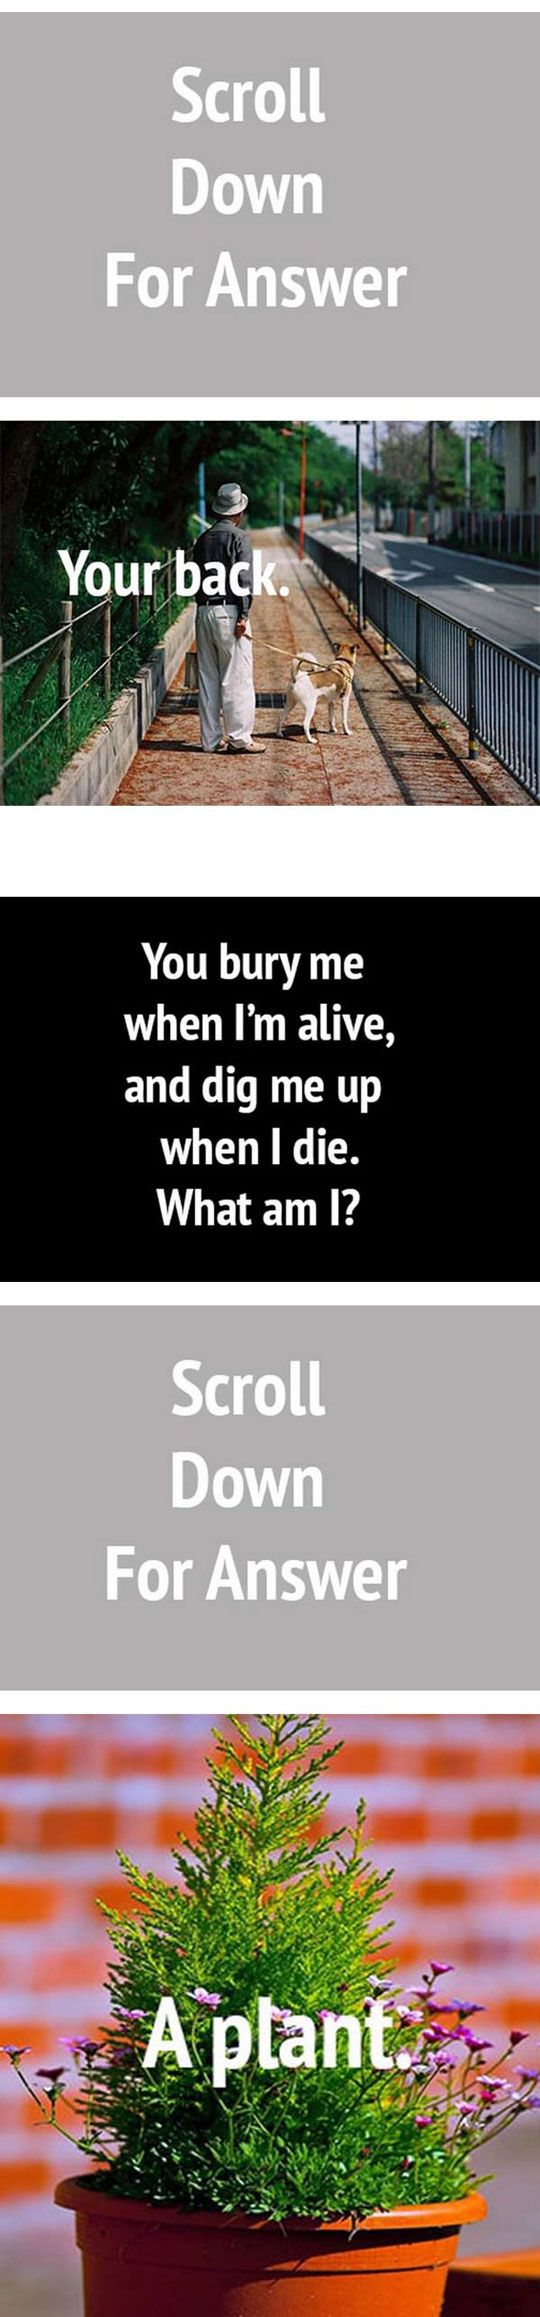 12 Epic Riddles Riddles Funny riddles with answers